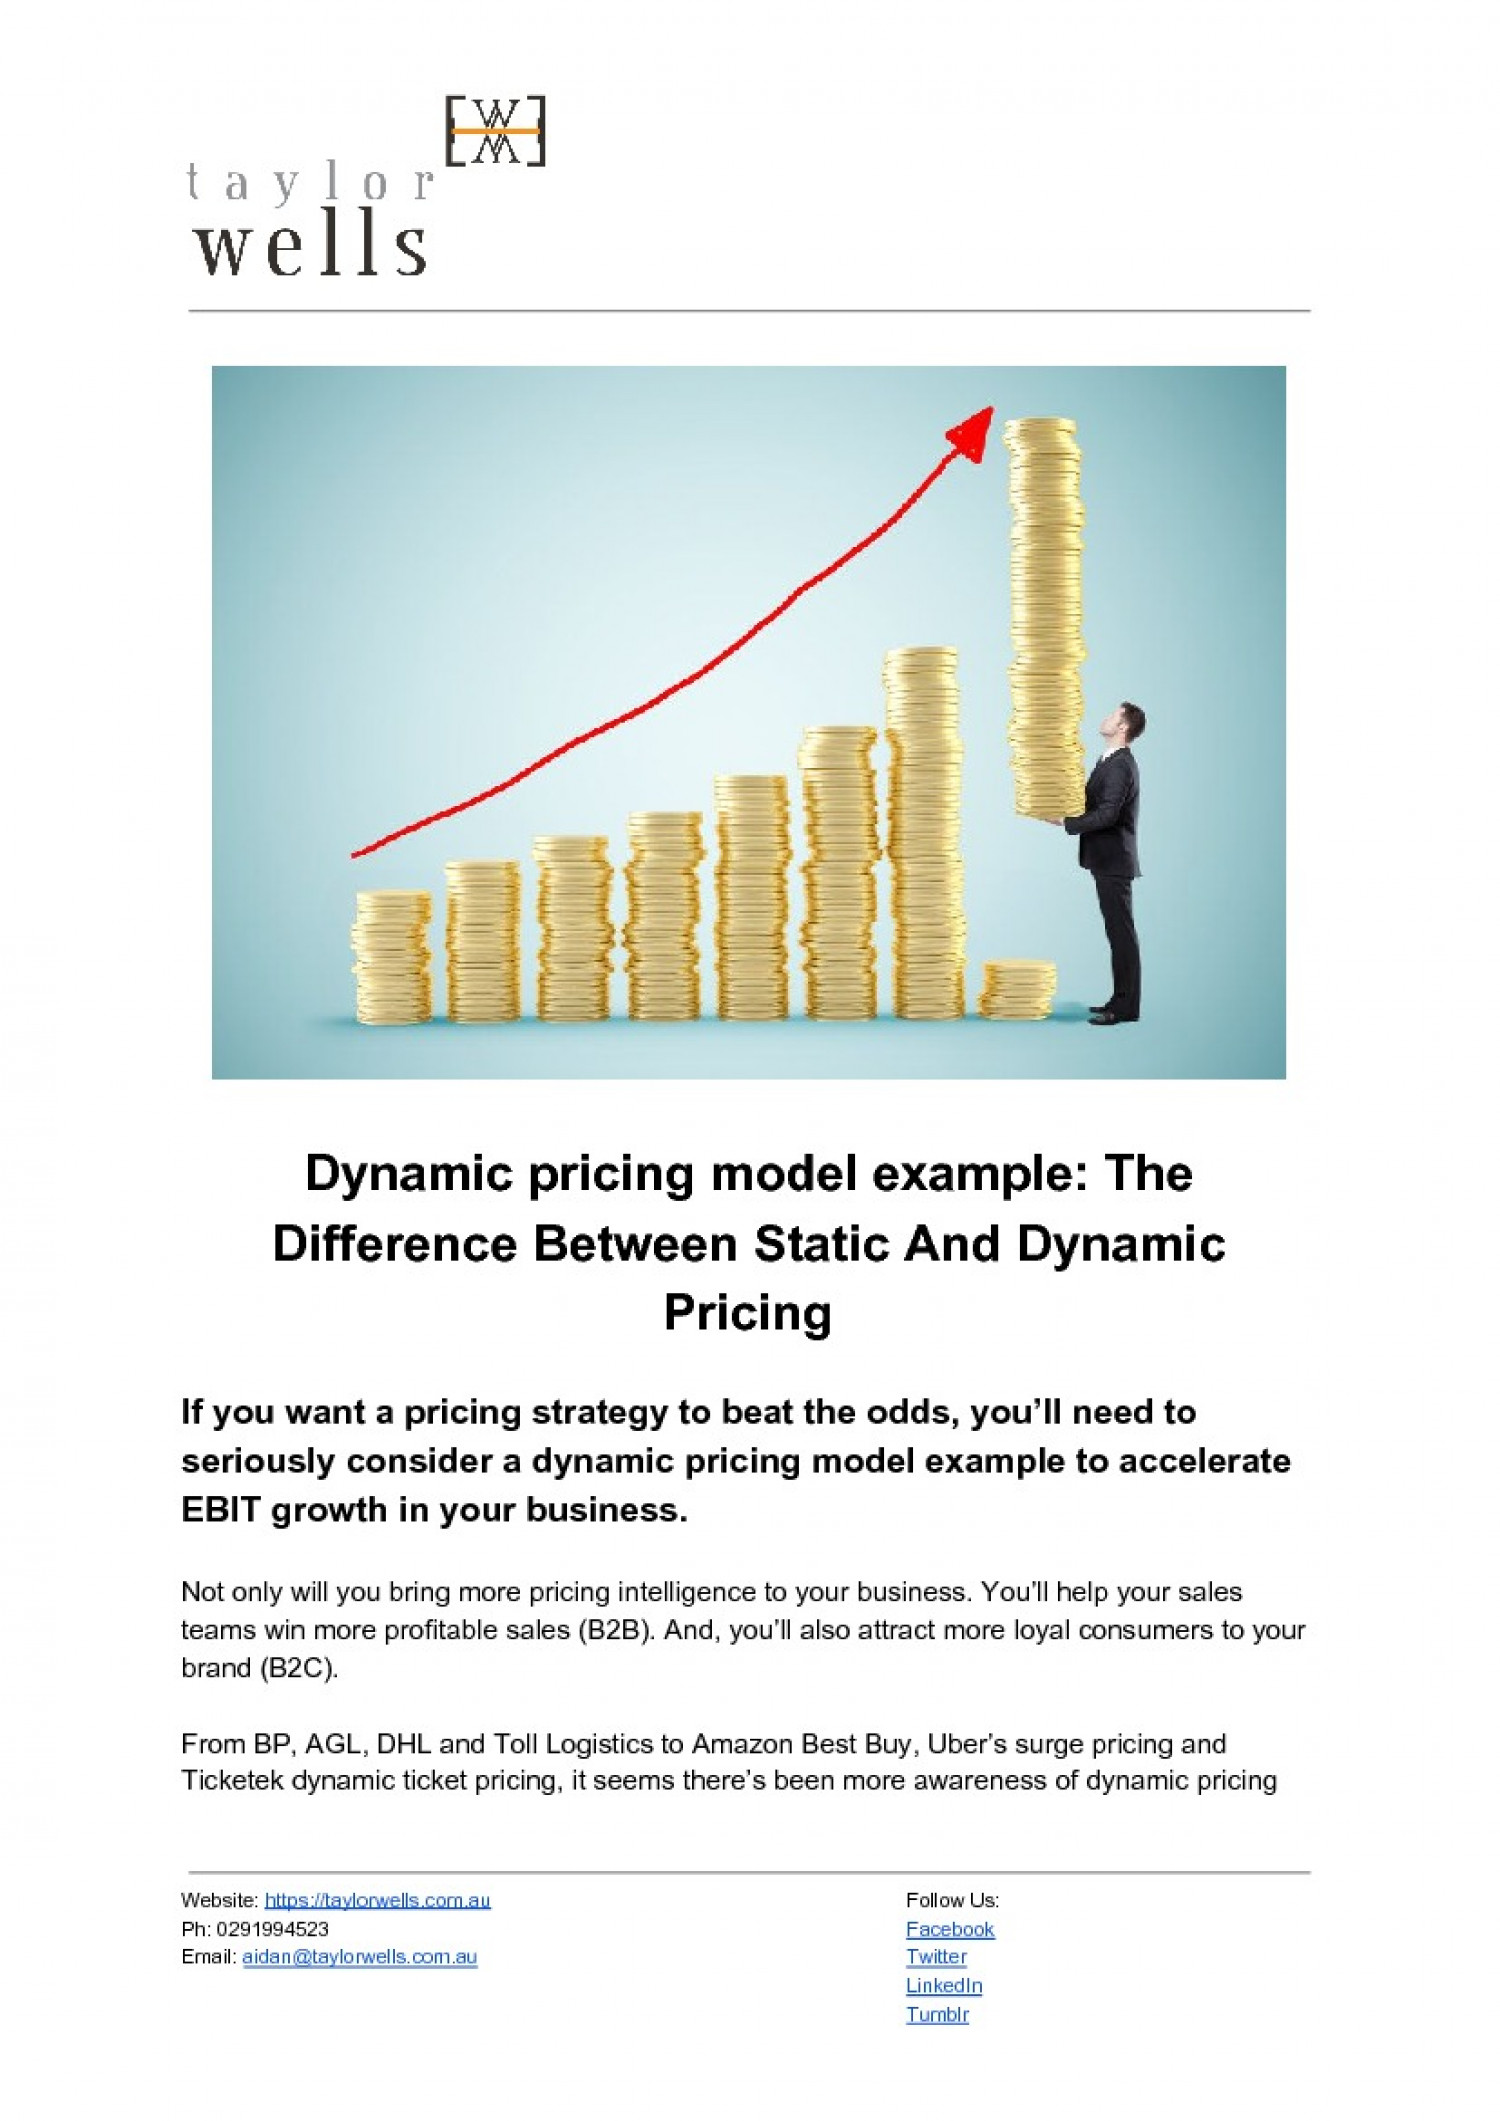 Dynamic Pricing Model Infographic